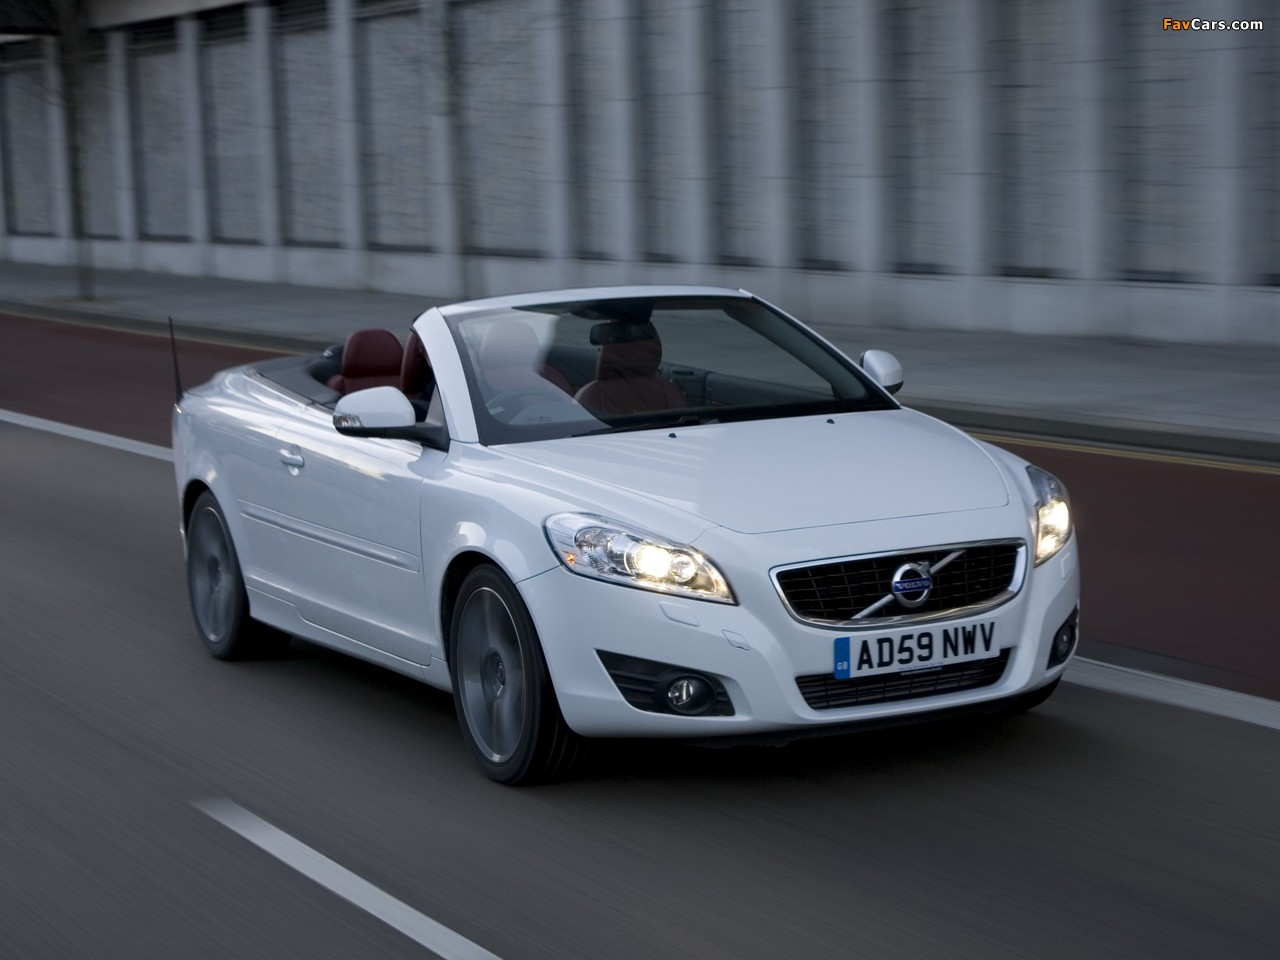 volvo c70 d5 uk spec 2010 pictures 1280x960. Black Bedroom Furniture Sets. Home Design Ideas